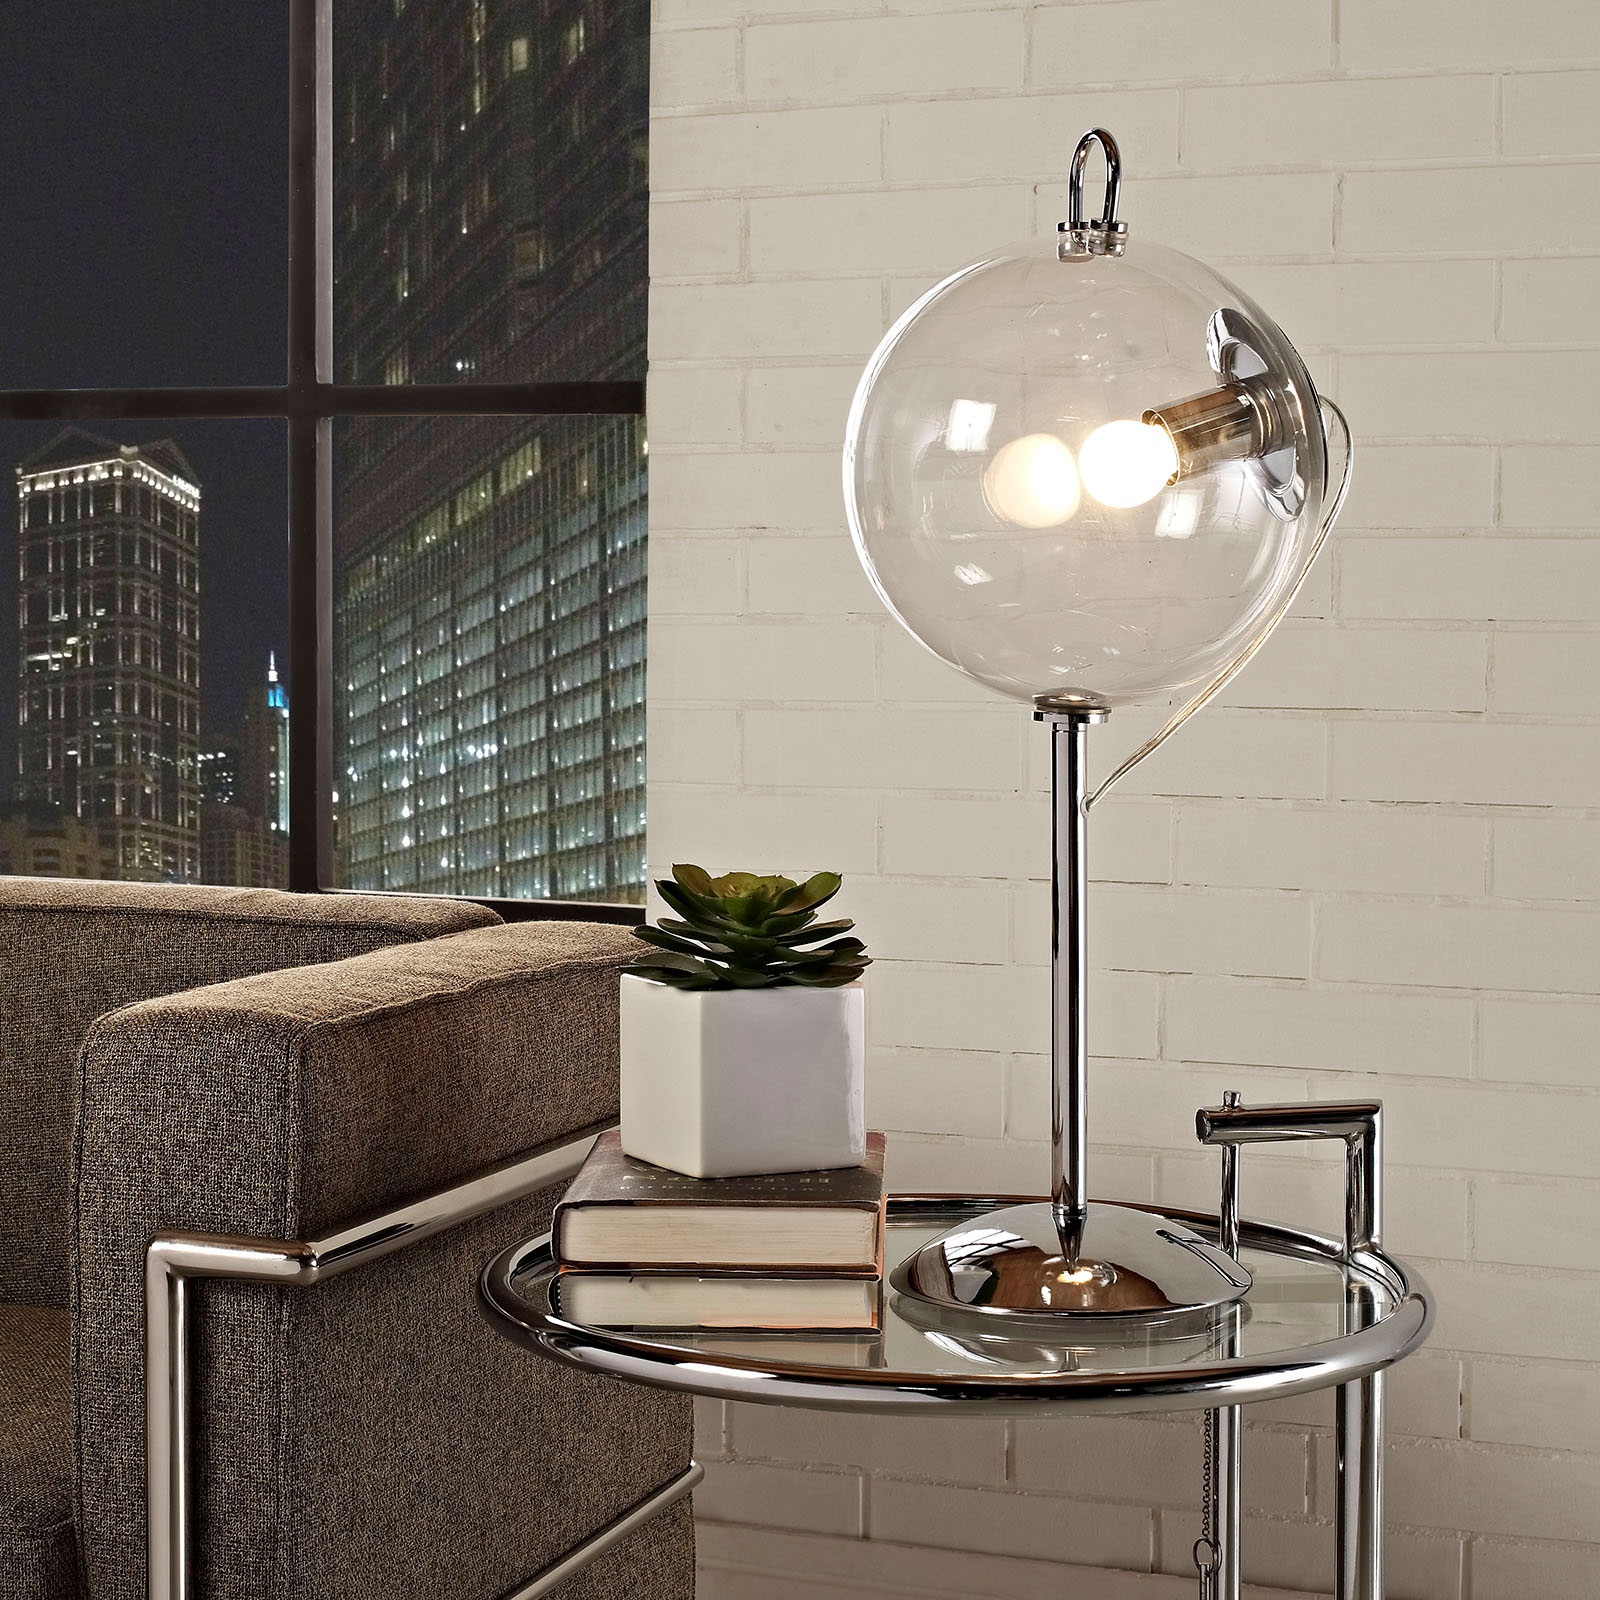 4qFCEo63Dh_Orb_Table_Lamp3